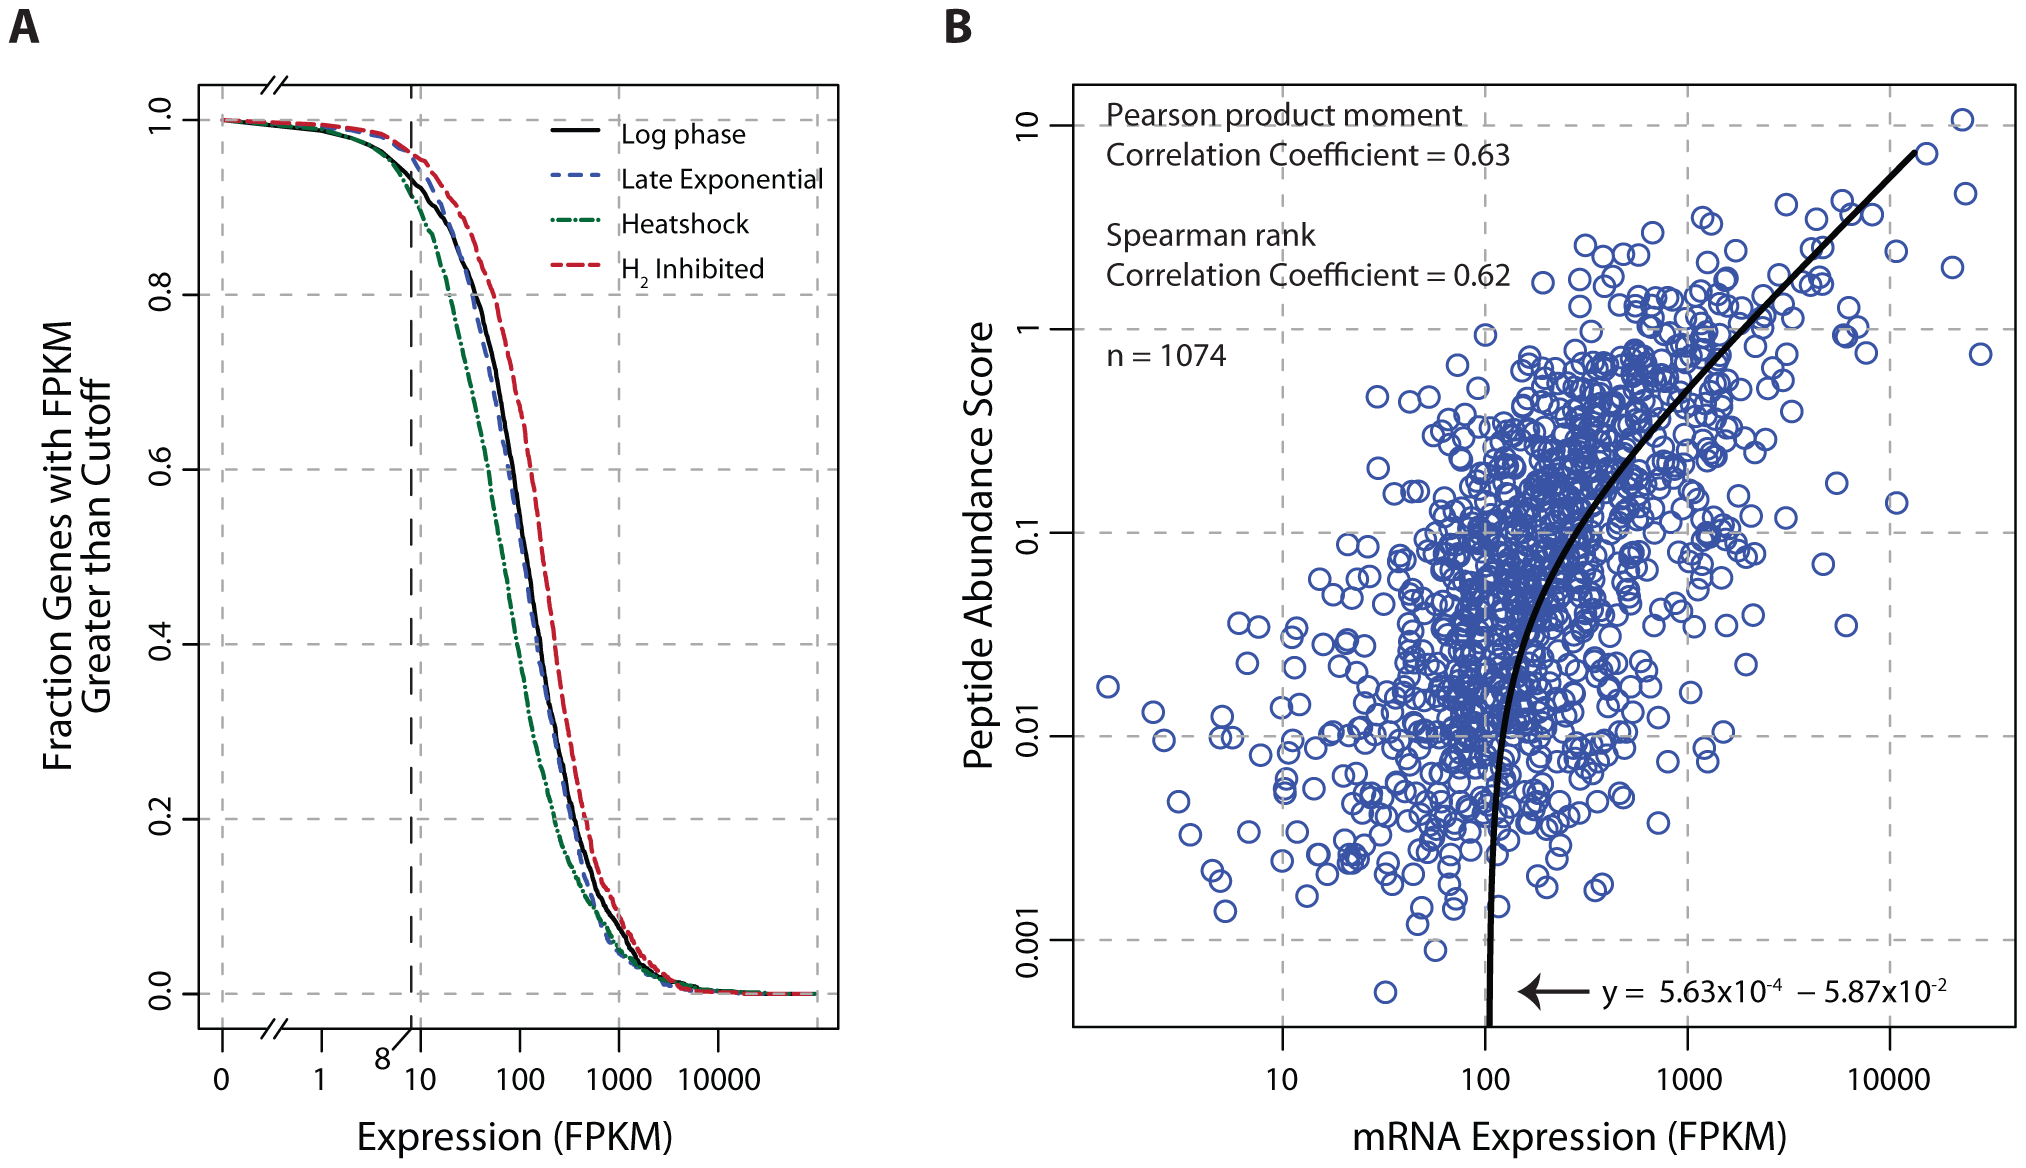 Global analysis of mRNA and protein expression levels.